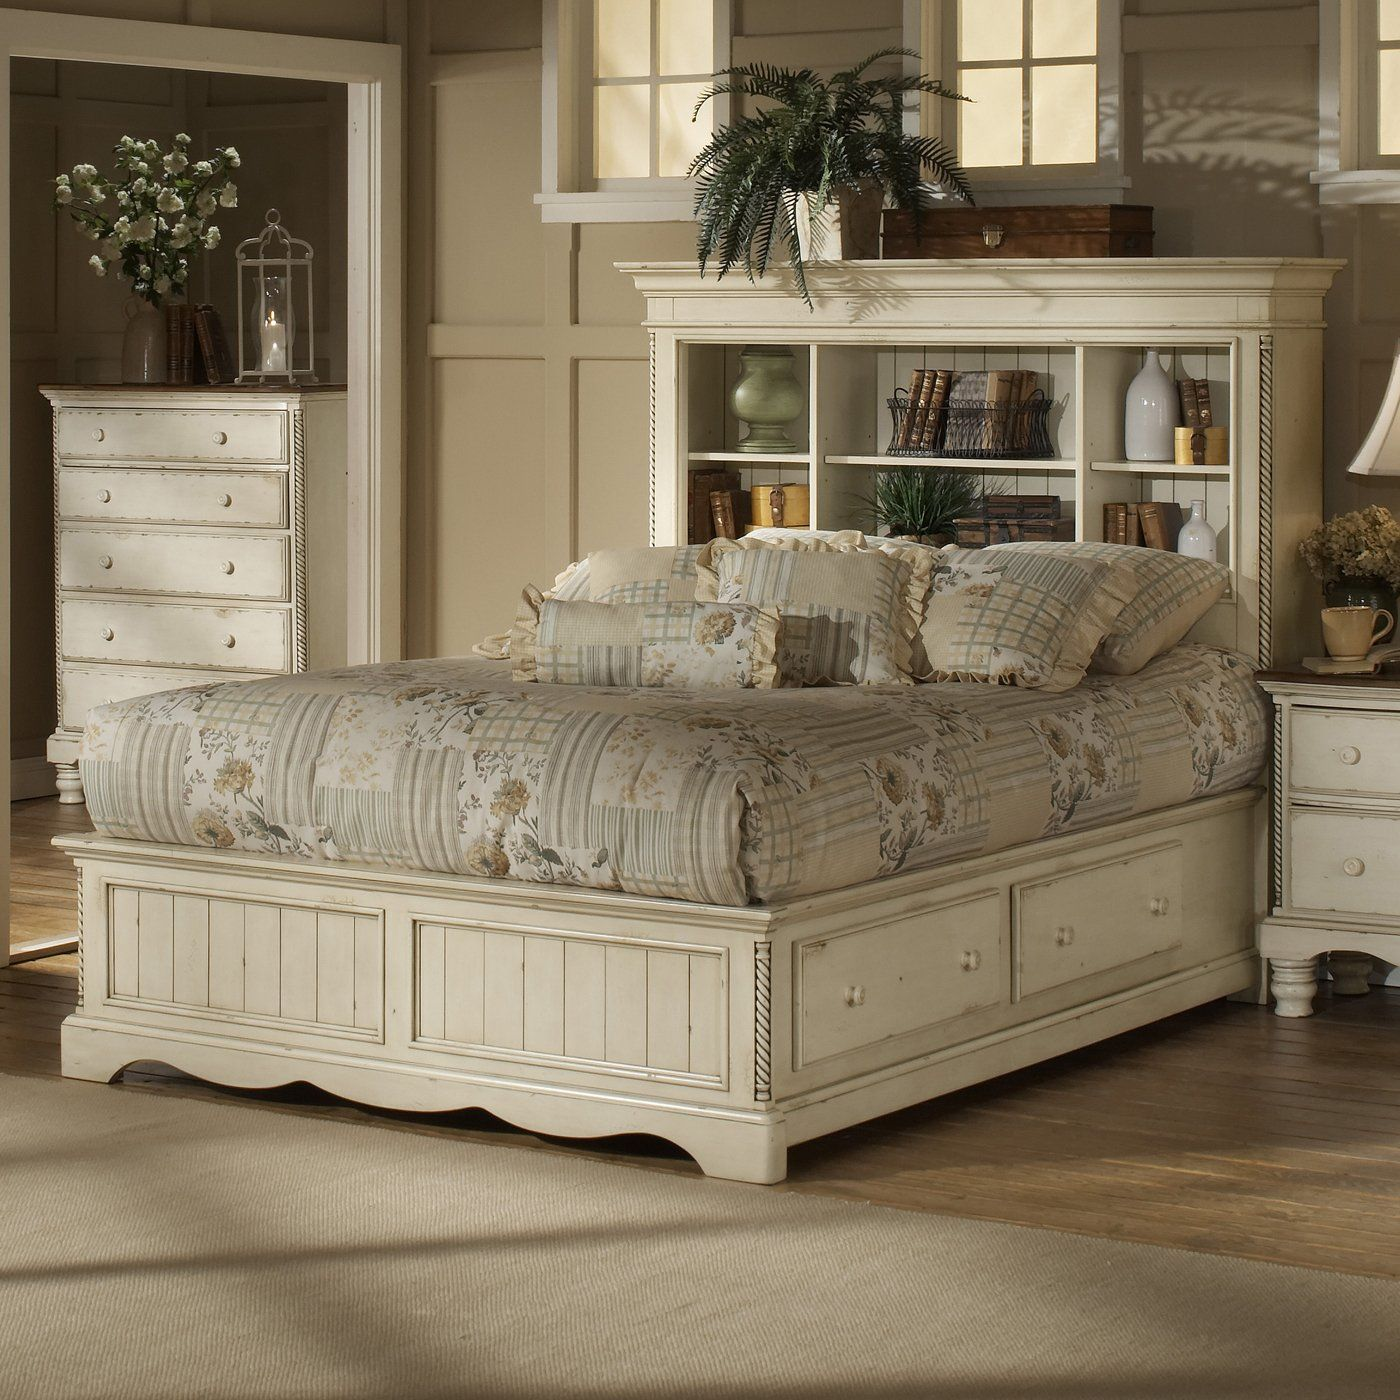 white bookcase storage bed. Beautiful Storage Hillsdale Furniture 1172 Wilshire Bookcase Storage Bed Antique White   Home Showroom For Bed E